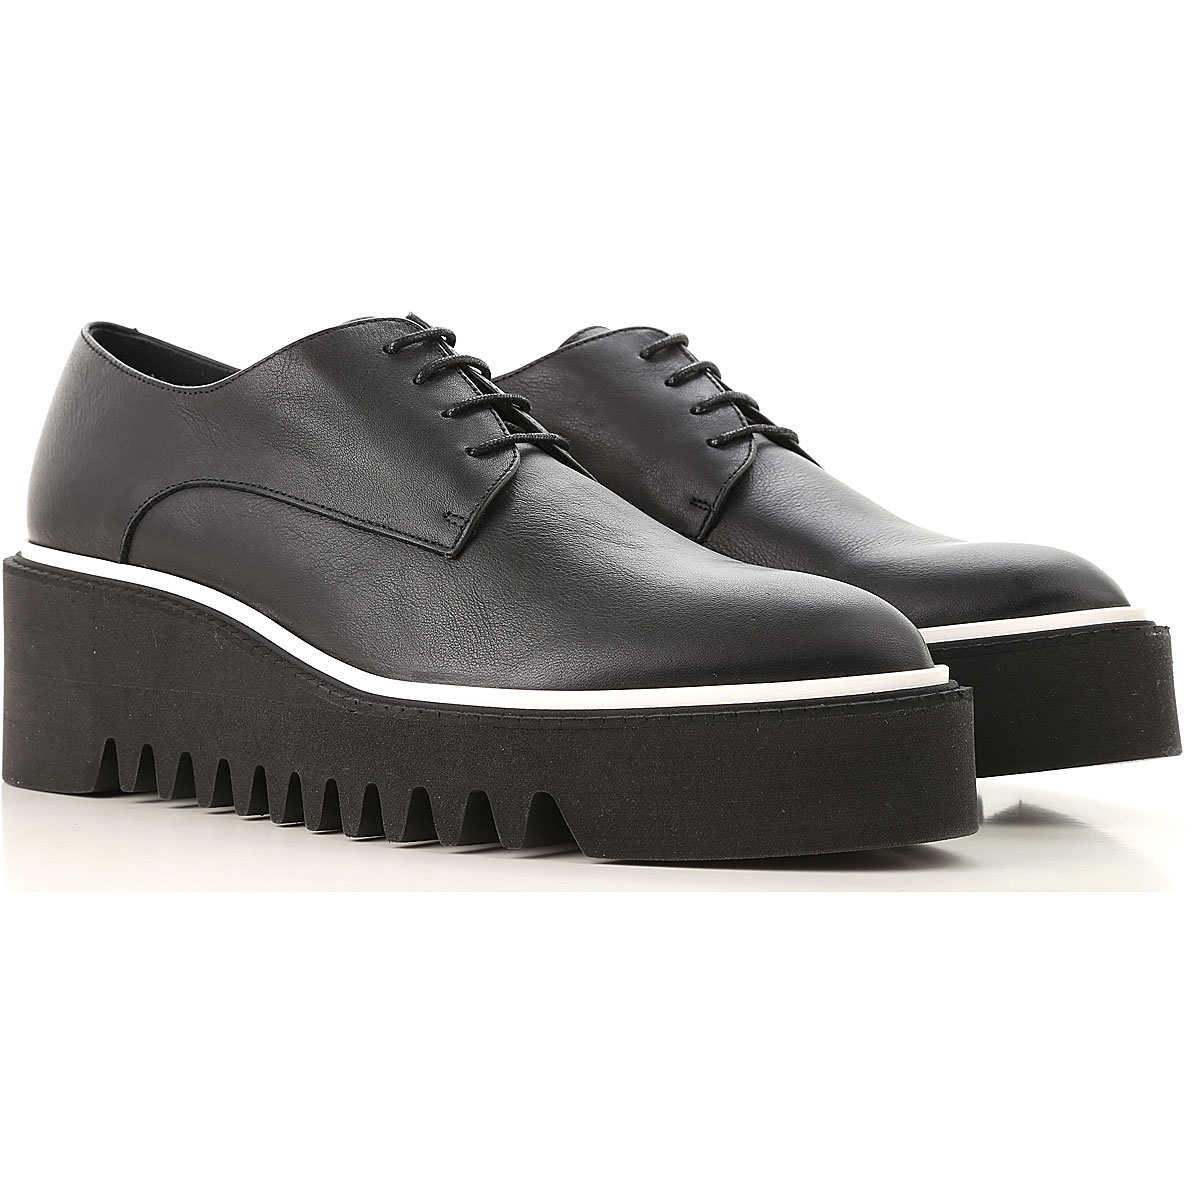 Paloma Barcelo Brogues Oxford Shoes On Sale Black DK - GOOFASH - Womens LEATHER SHOES